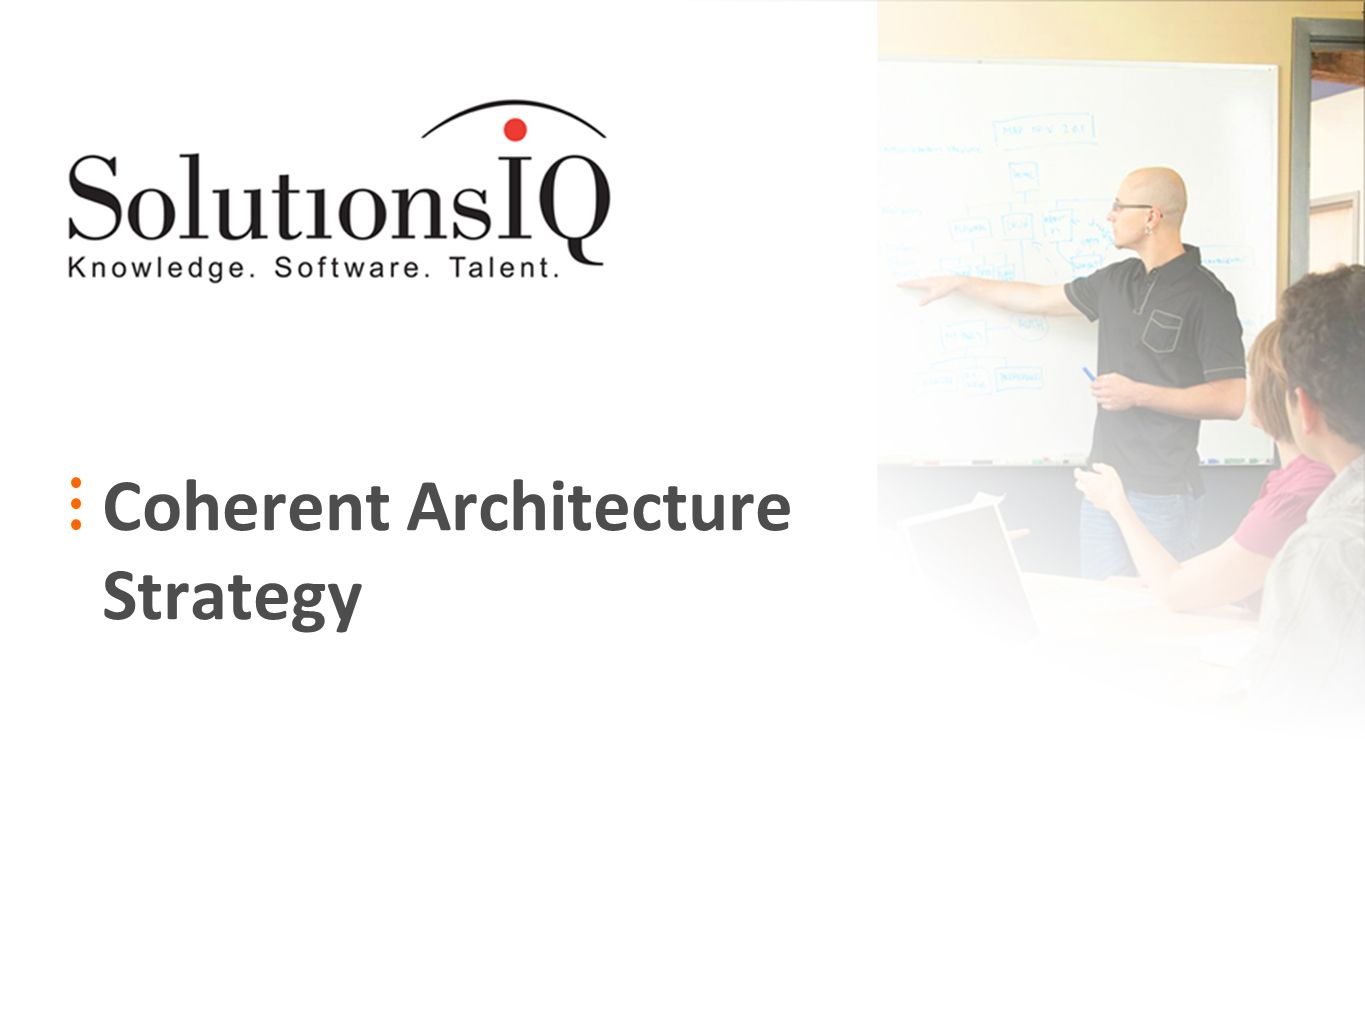 Coherent Architecture Strategy